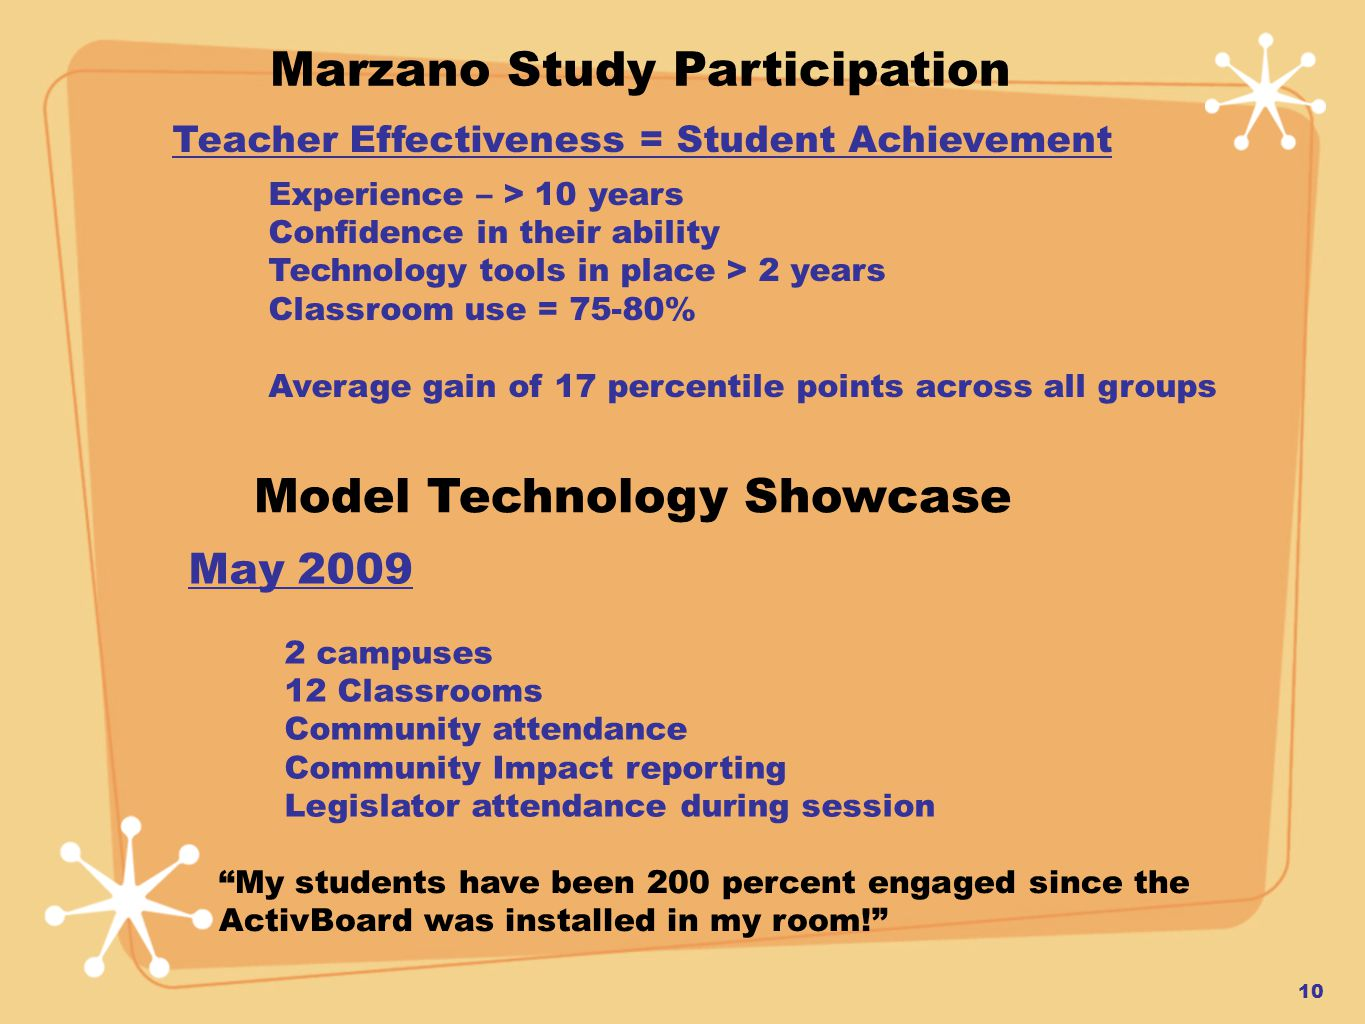 Marzano Study Participation Teacher Effectiveness = Student Achievement Experience – > 10 years Confidence in their ability Technology tools in place > 2 years Classroom use = 75-80% Average gain of 17 percentile points across all groups Model Technology Showcase May 2009 2 campuses 12 Classrooms Community attendance Community Impact reporting Legislator attendance during session My students have been 200 percent engaged since the ActivBoard was installed in my room! 10